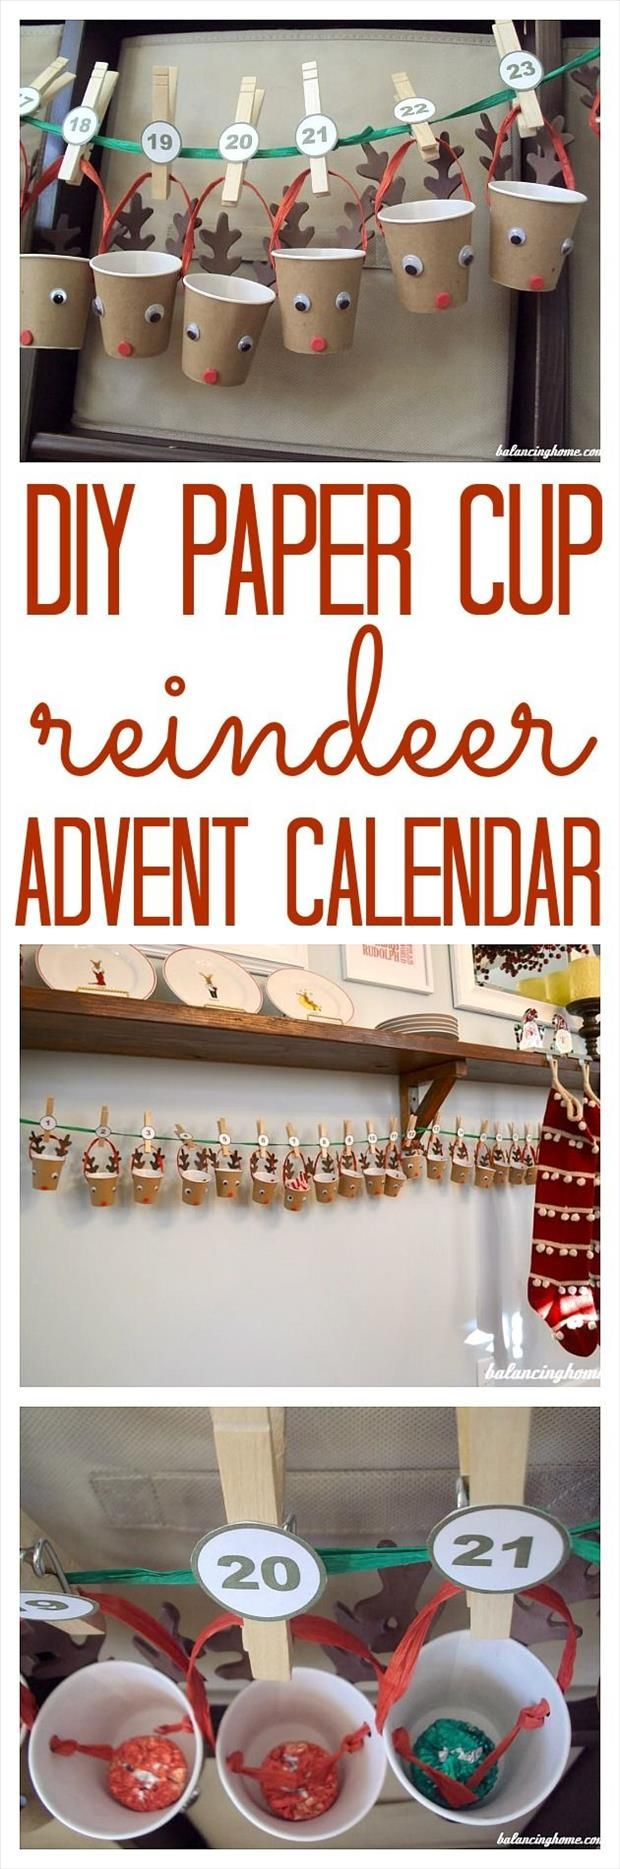 Diy Christian Advent Calendar : Fun do it yourself craft ideas pics crafty pictures